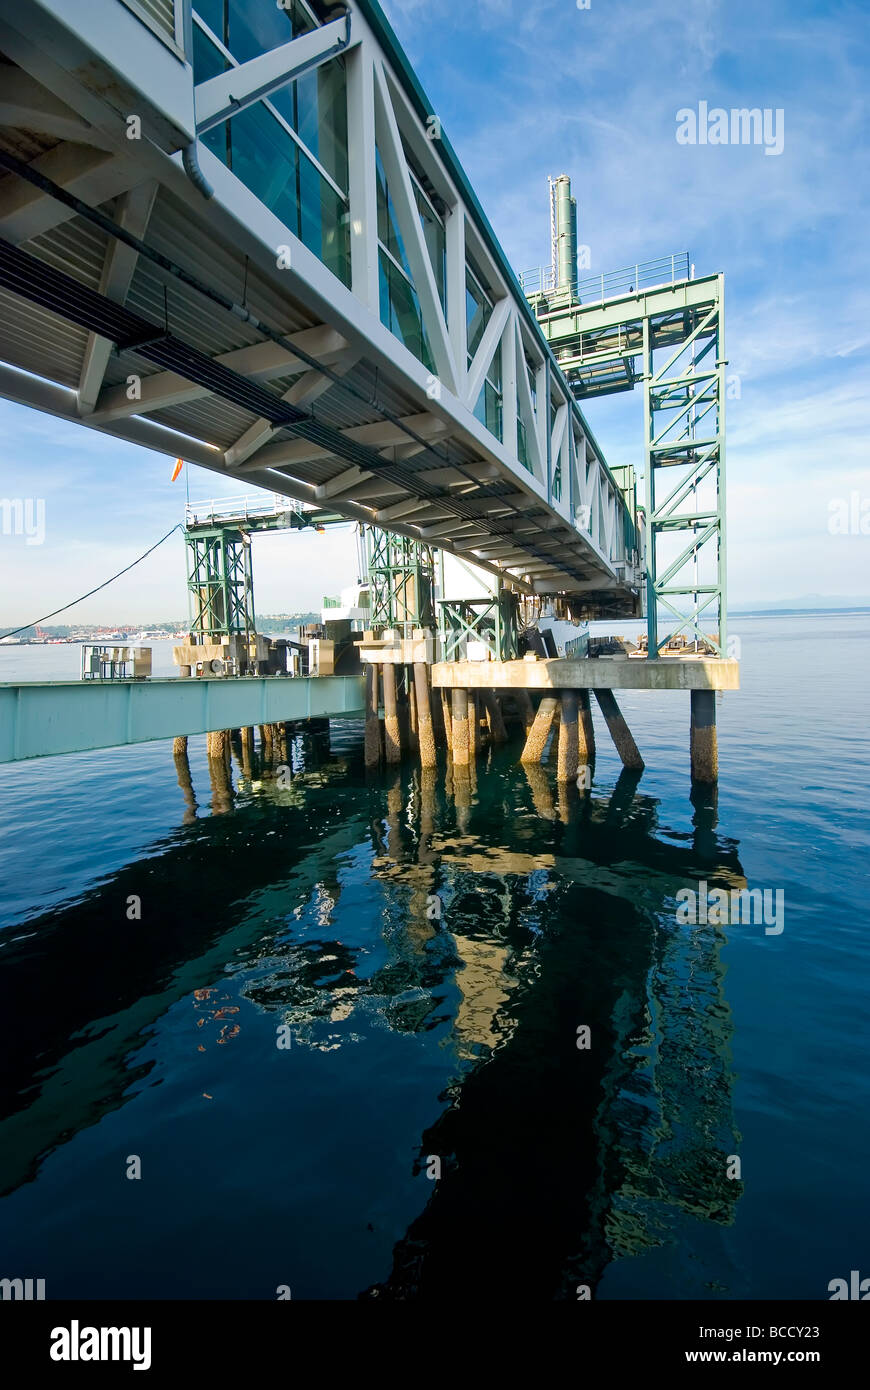 Gangplank for ferries in Washington State - Stock Image